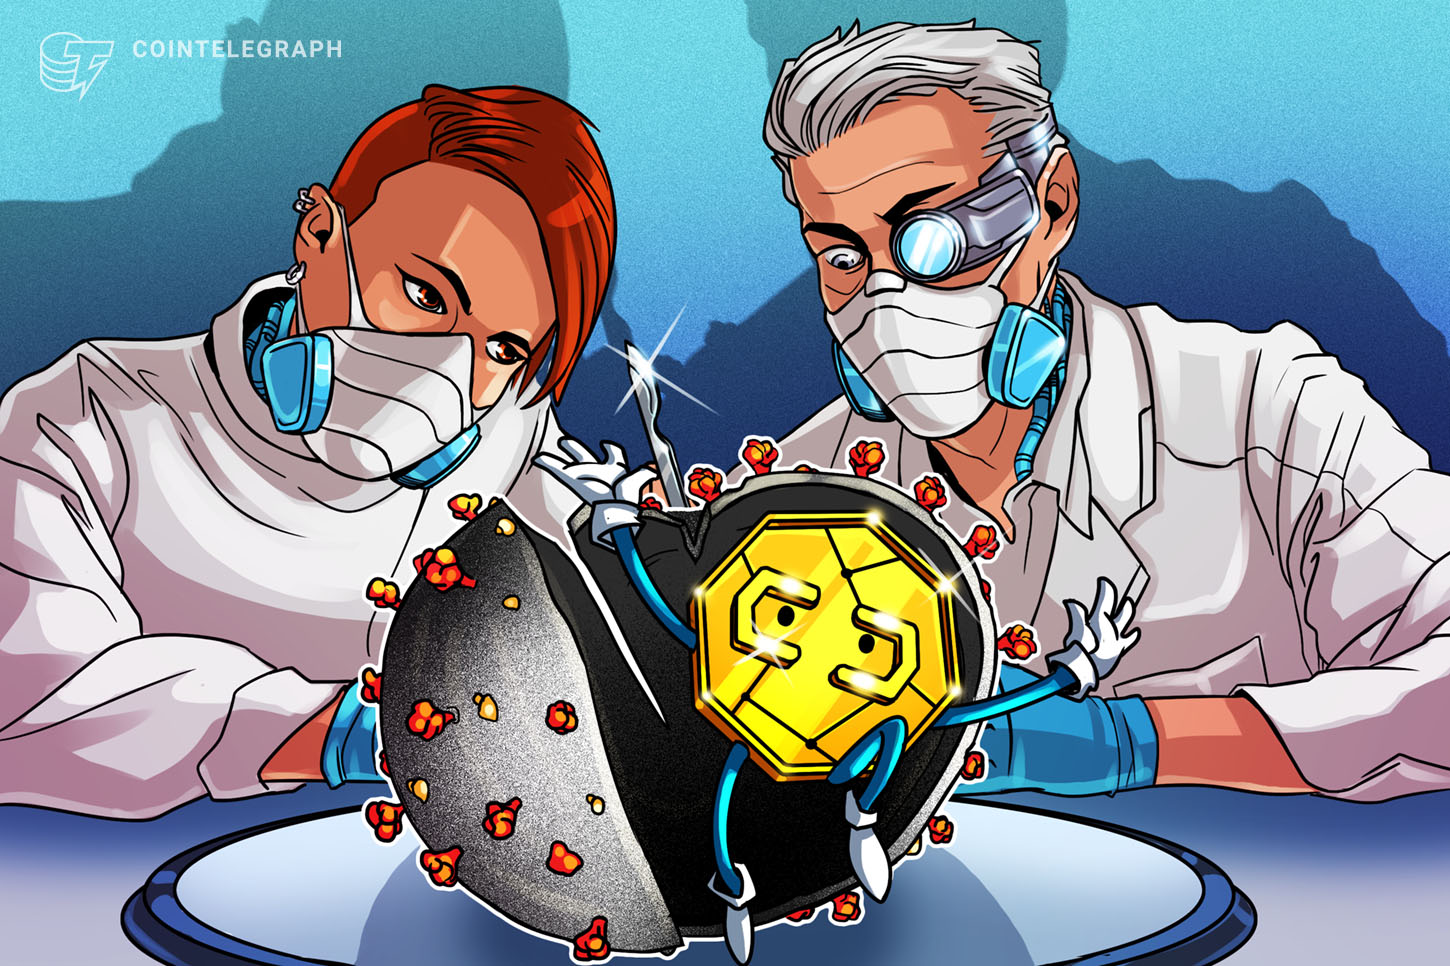 Indian IT giant Tech Mahindra partners on blockchain system for vaccine tracing